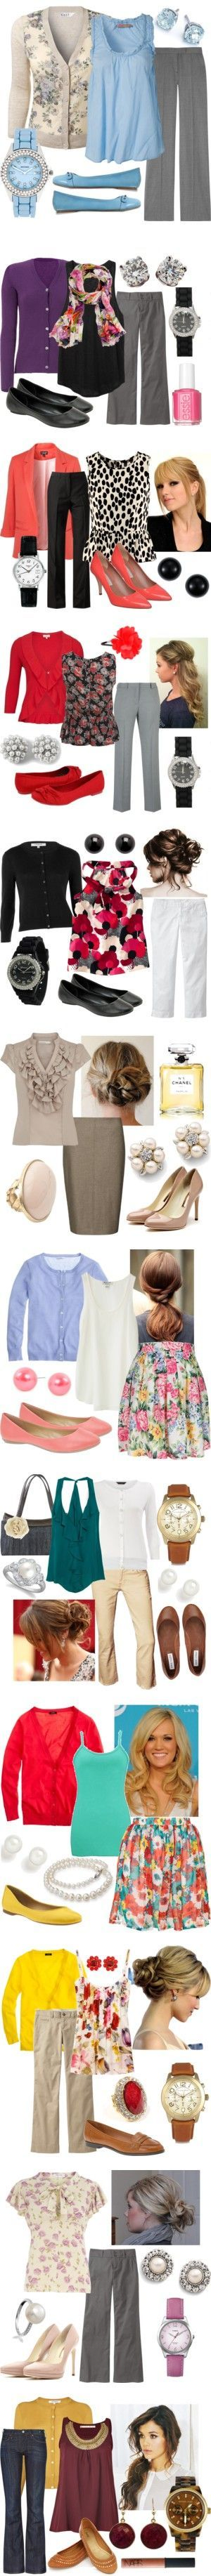 """cute ideas for springtime """"Teaching Outfits"""" by qtpiekelso on Polyvore"""